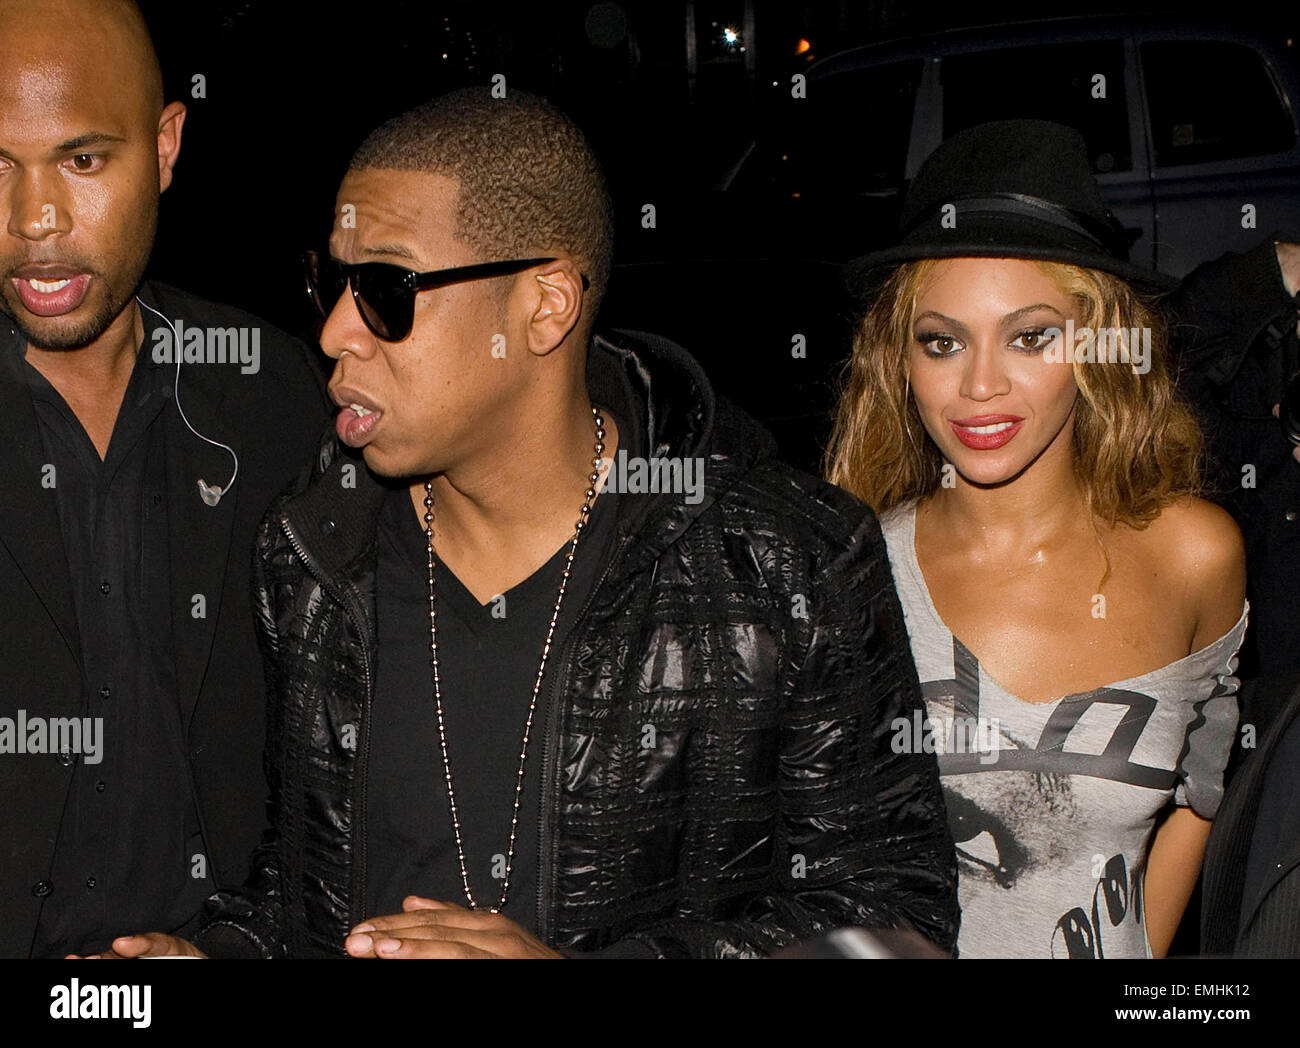 16 london pop diva beyonce and husband hip hop star stock photo royalty free - Beyonce diva download ...